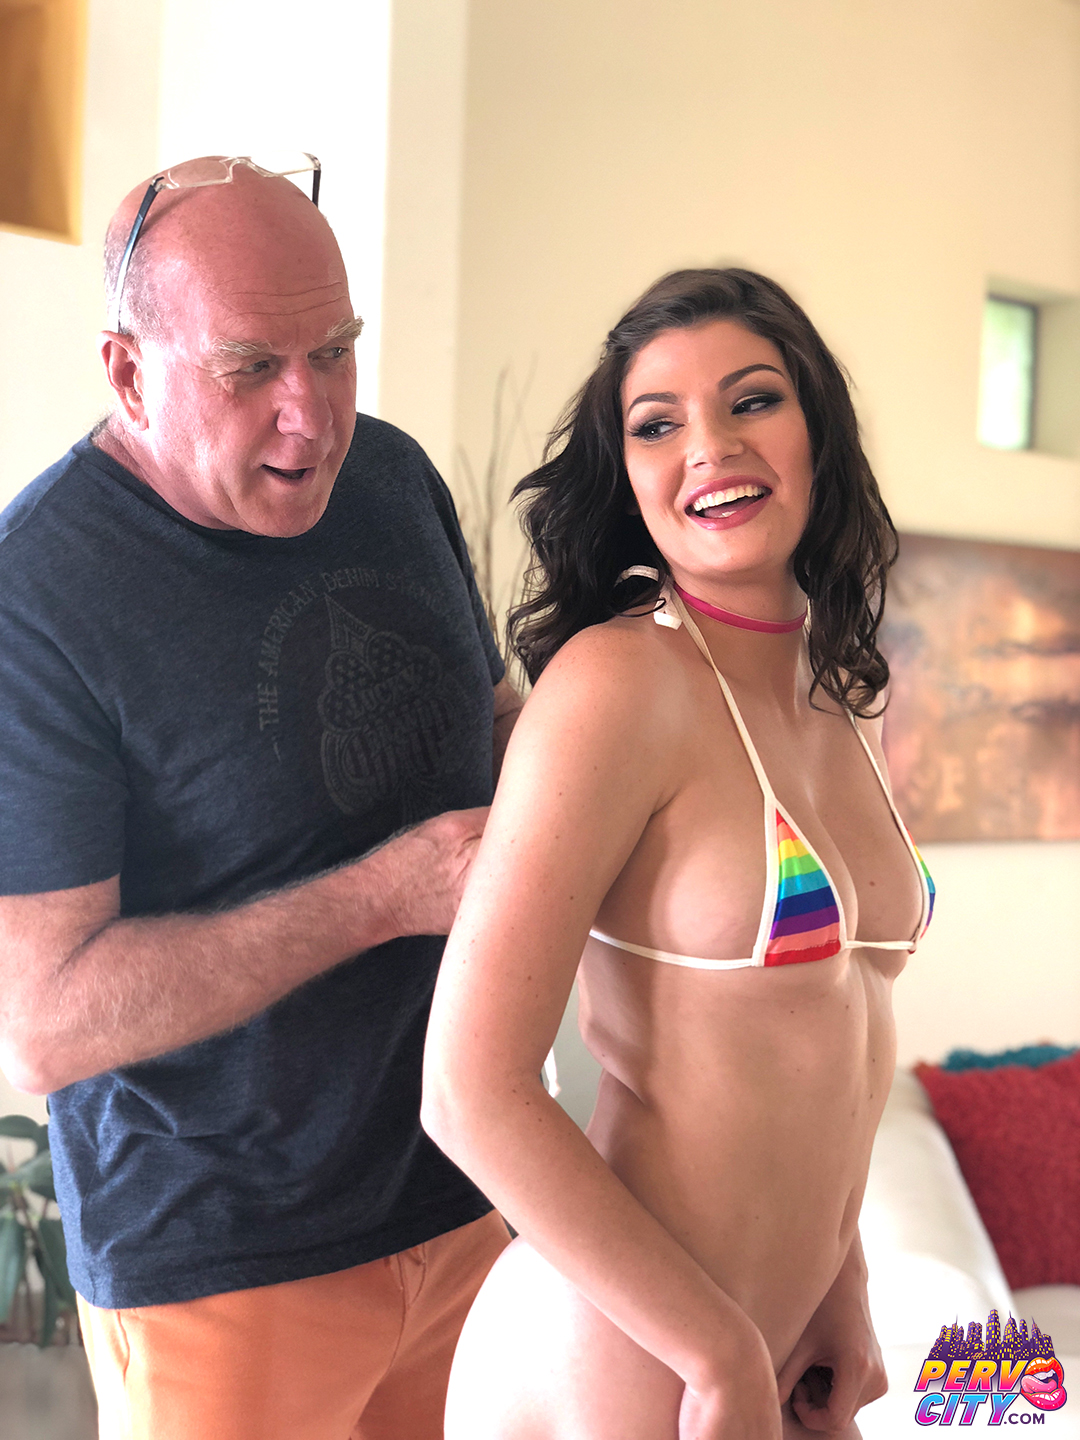 Behind the Scenes with Jessica Rex